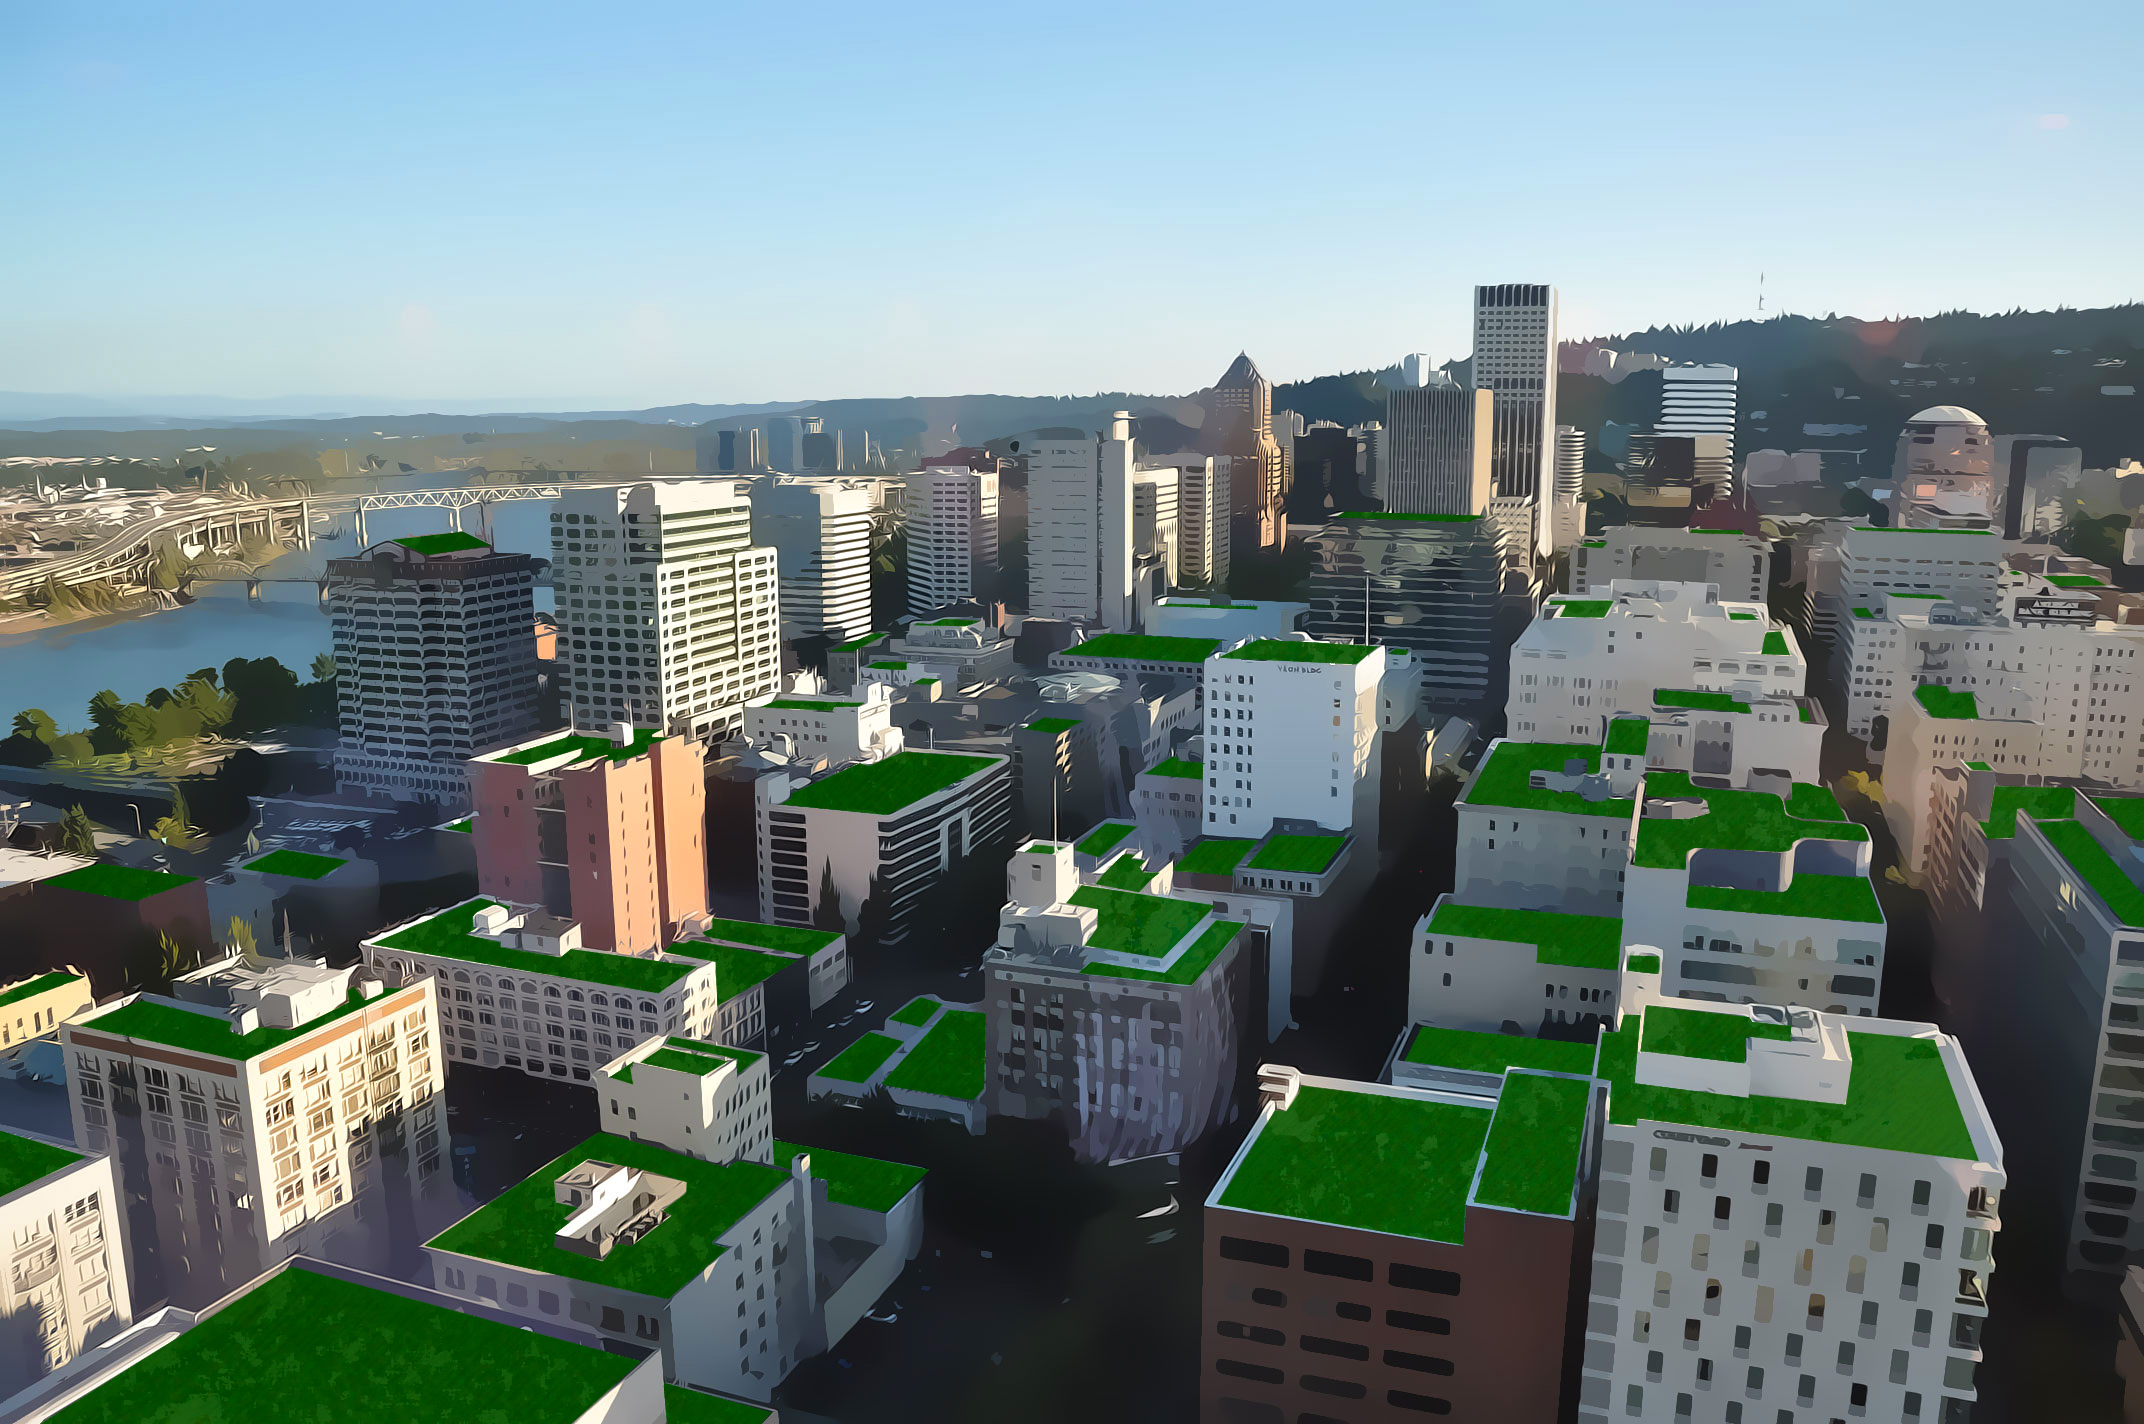 Aerial view of Portland with photo-shopped eco-roof [museumofthecity.org]